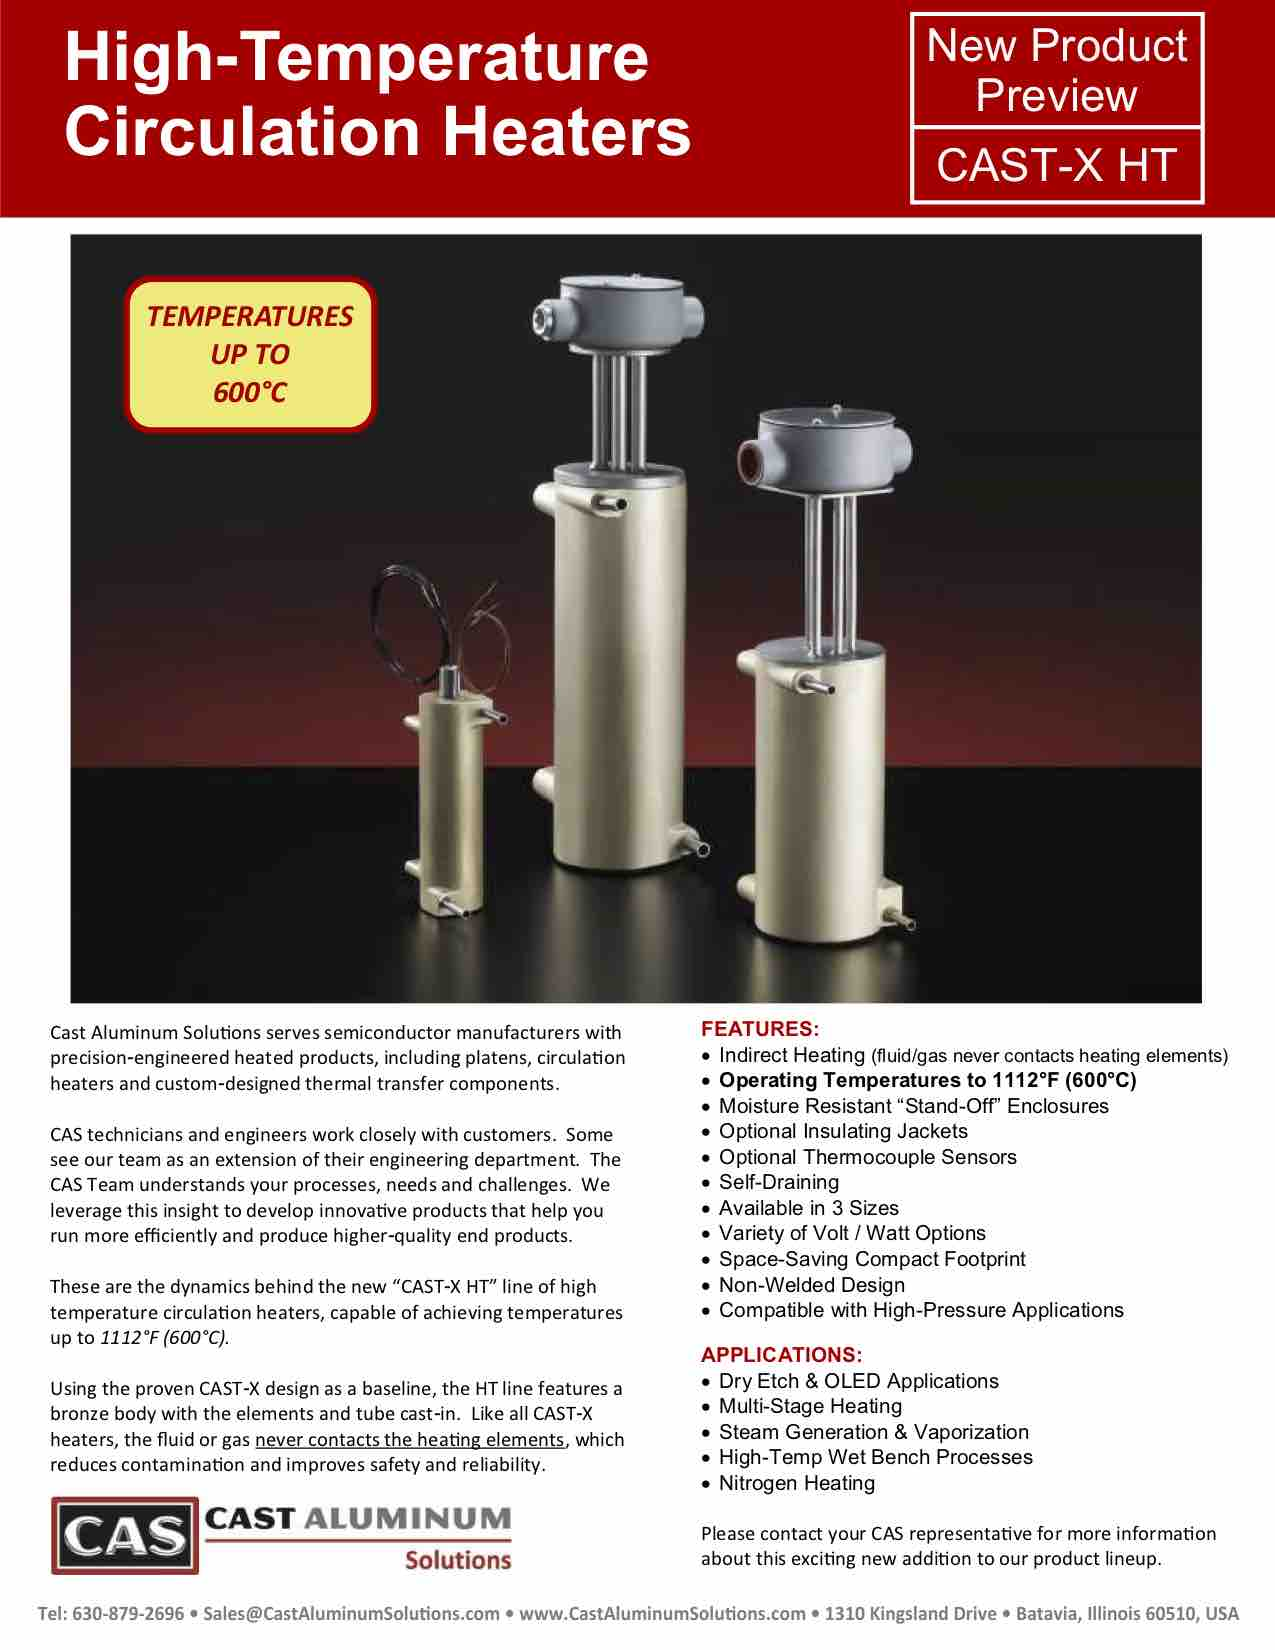 CAST X High Temp Circulation Heaters Cast Aluminum Solutions (dragged)